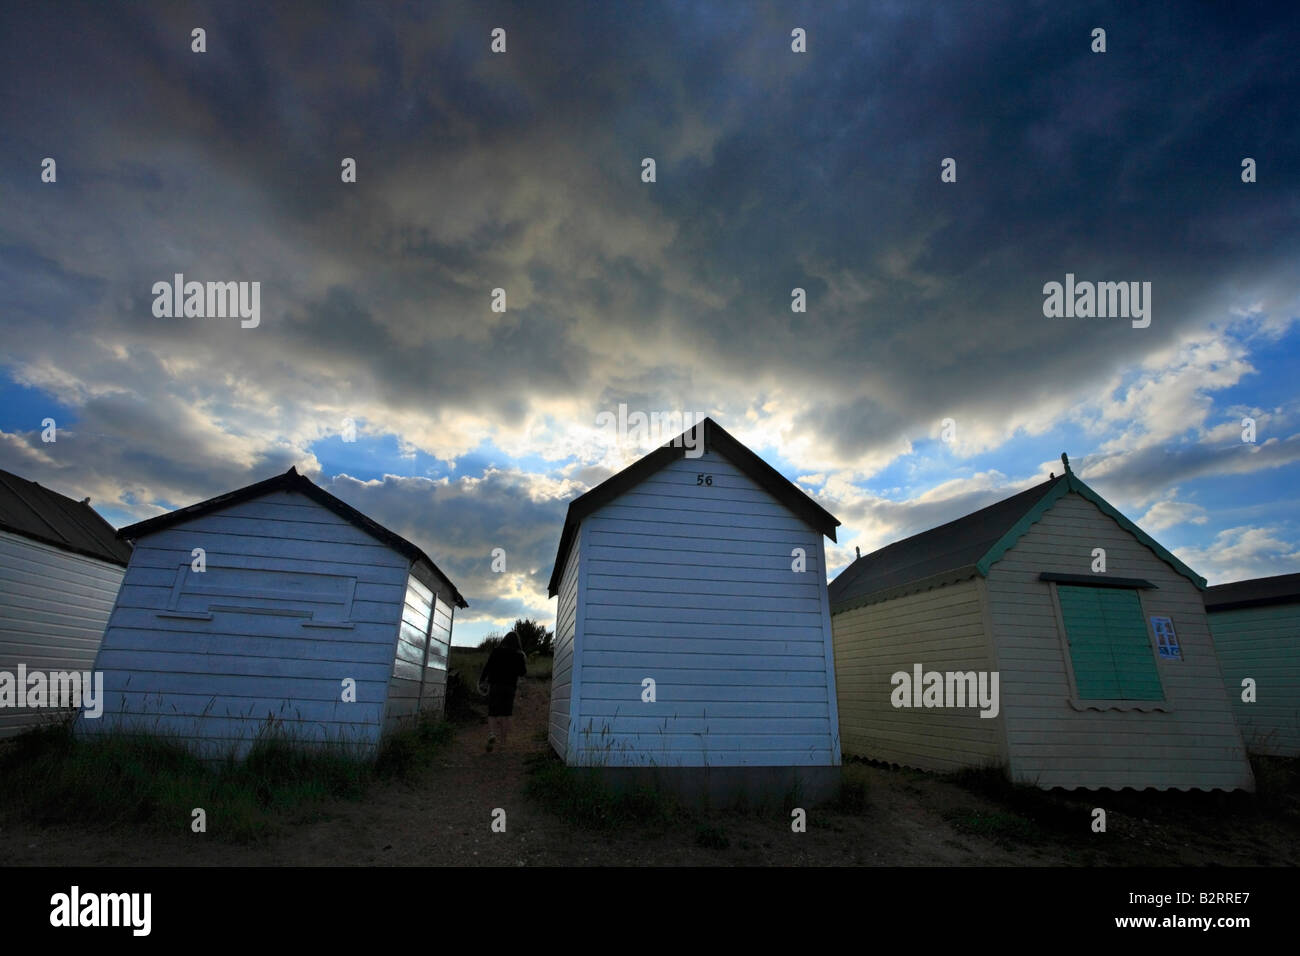 Child walking betwenn beach huts under a stormy sky. Stock Photo